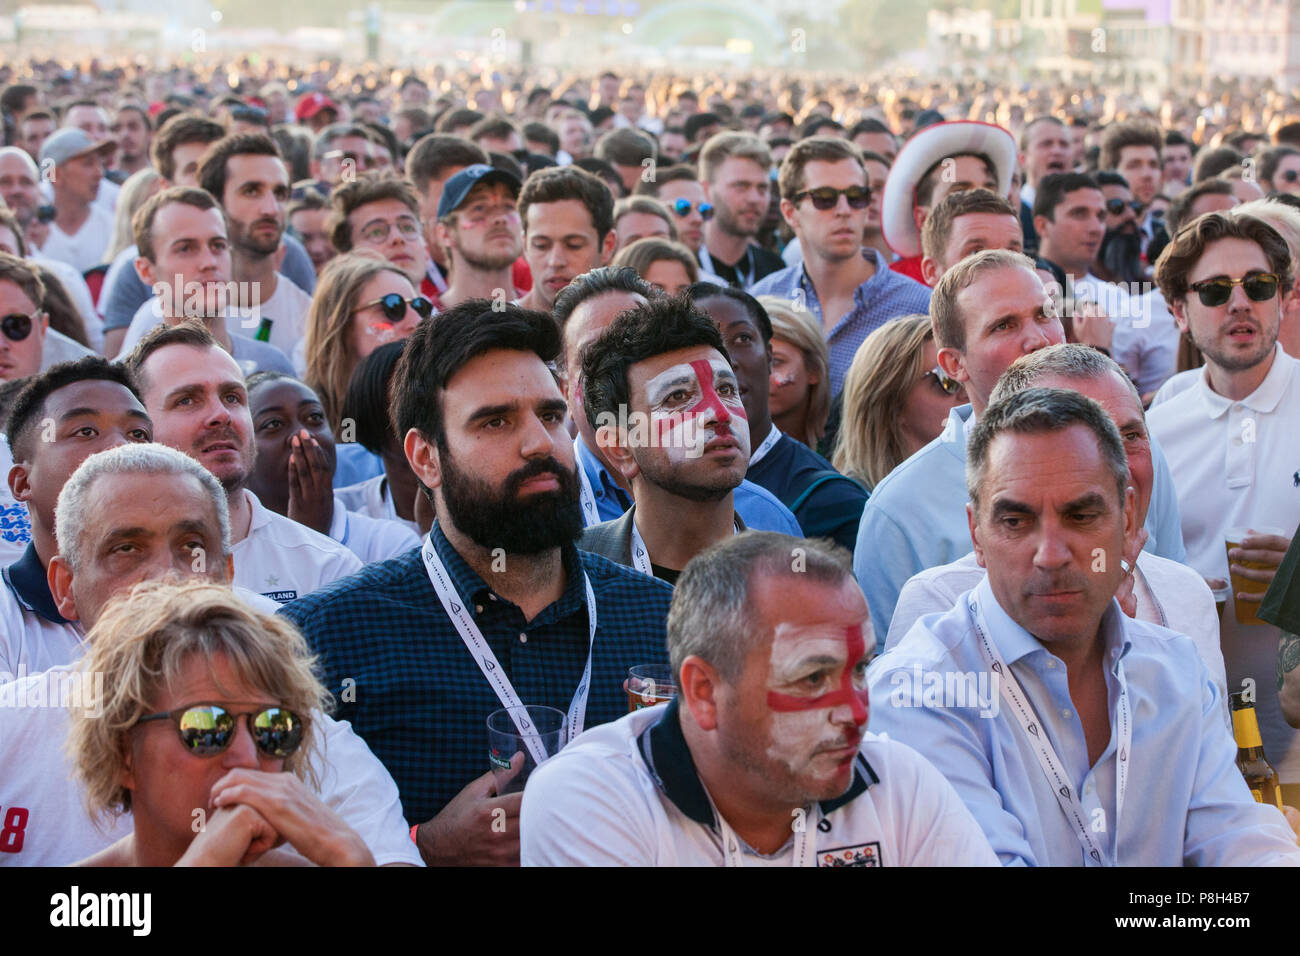 London, UK. 11th July, 2018. 30,000 England fans attend the public screening of the FIFA 2018 World Cup semi-final between England and Croatia in Hyde Park, the largest such screening of a football match since 1996. The event was organised by the Mayor of London and Government in conjunction with the Royal Parks, the Football Association and other agencies. The match provides England with the chance to reach their first World Cup final since 1966. Credit: Mark Kerrison/Alamy Live News Stock Photo